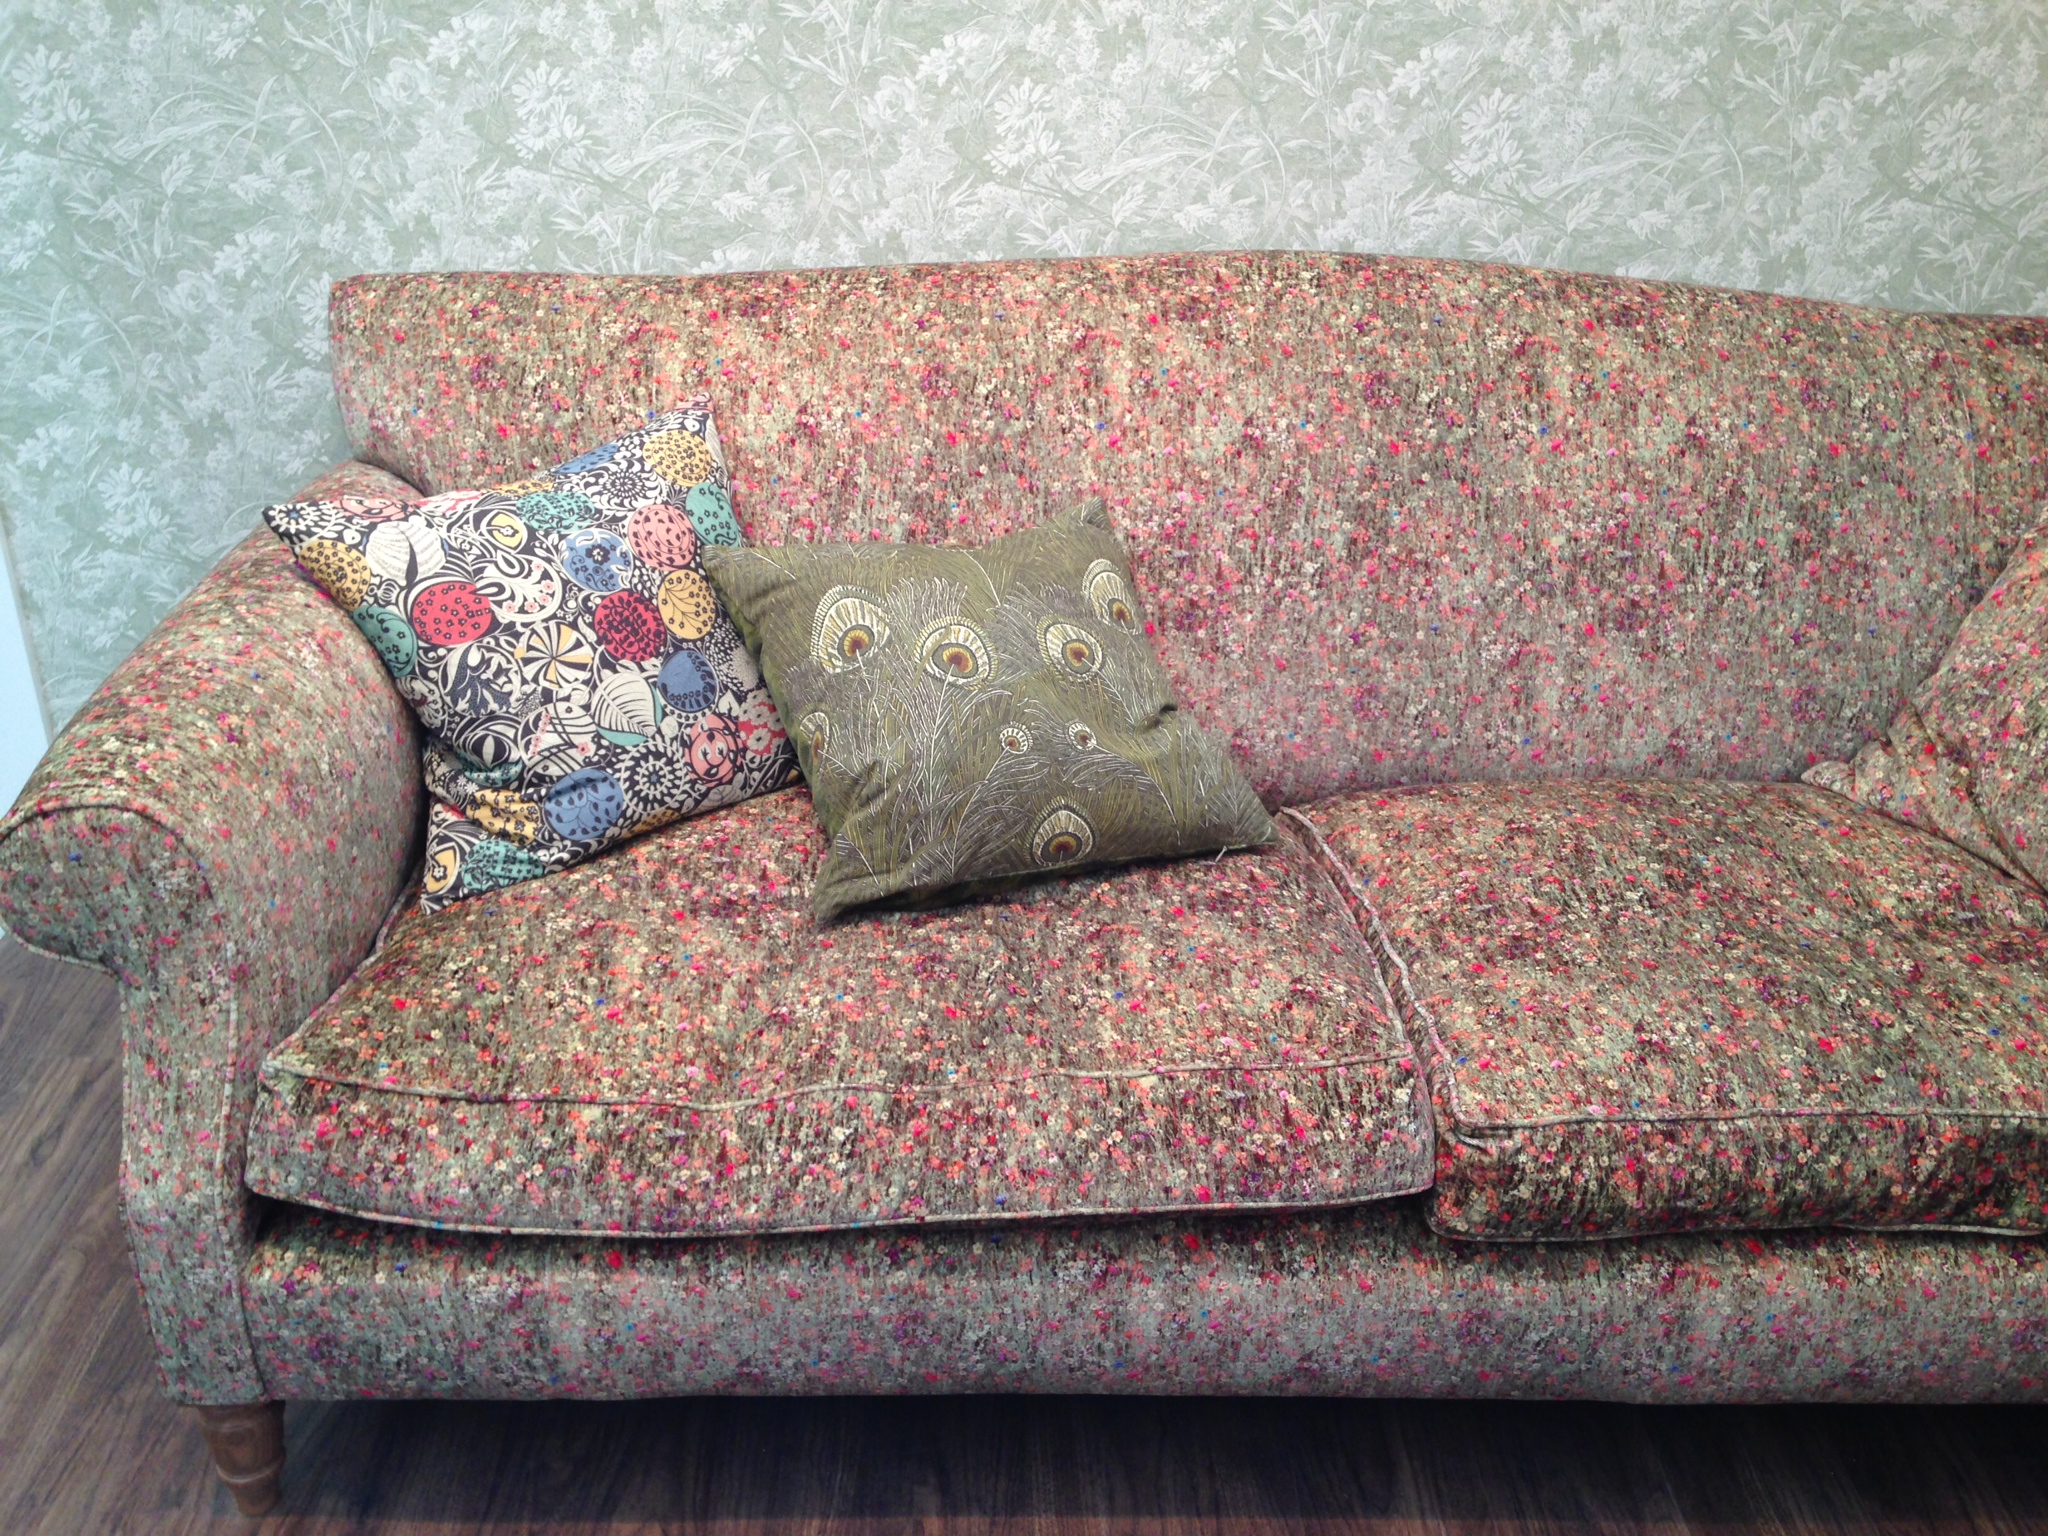 Liberty's 'Nesfield Collection' - their latest range of furnishing fabrics inspired by British landscape architect William Nesfield.     The sofa is covered in Floral Mawston Meadow Cottom Velvet in Velvet Pollen.